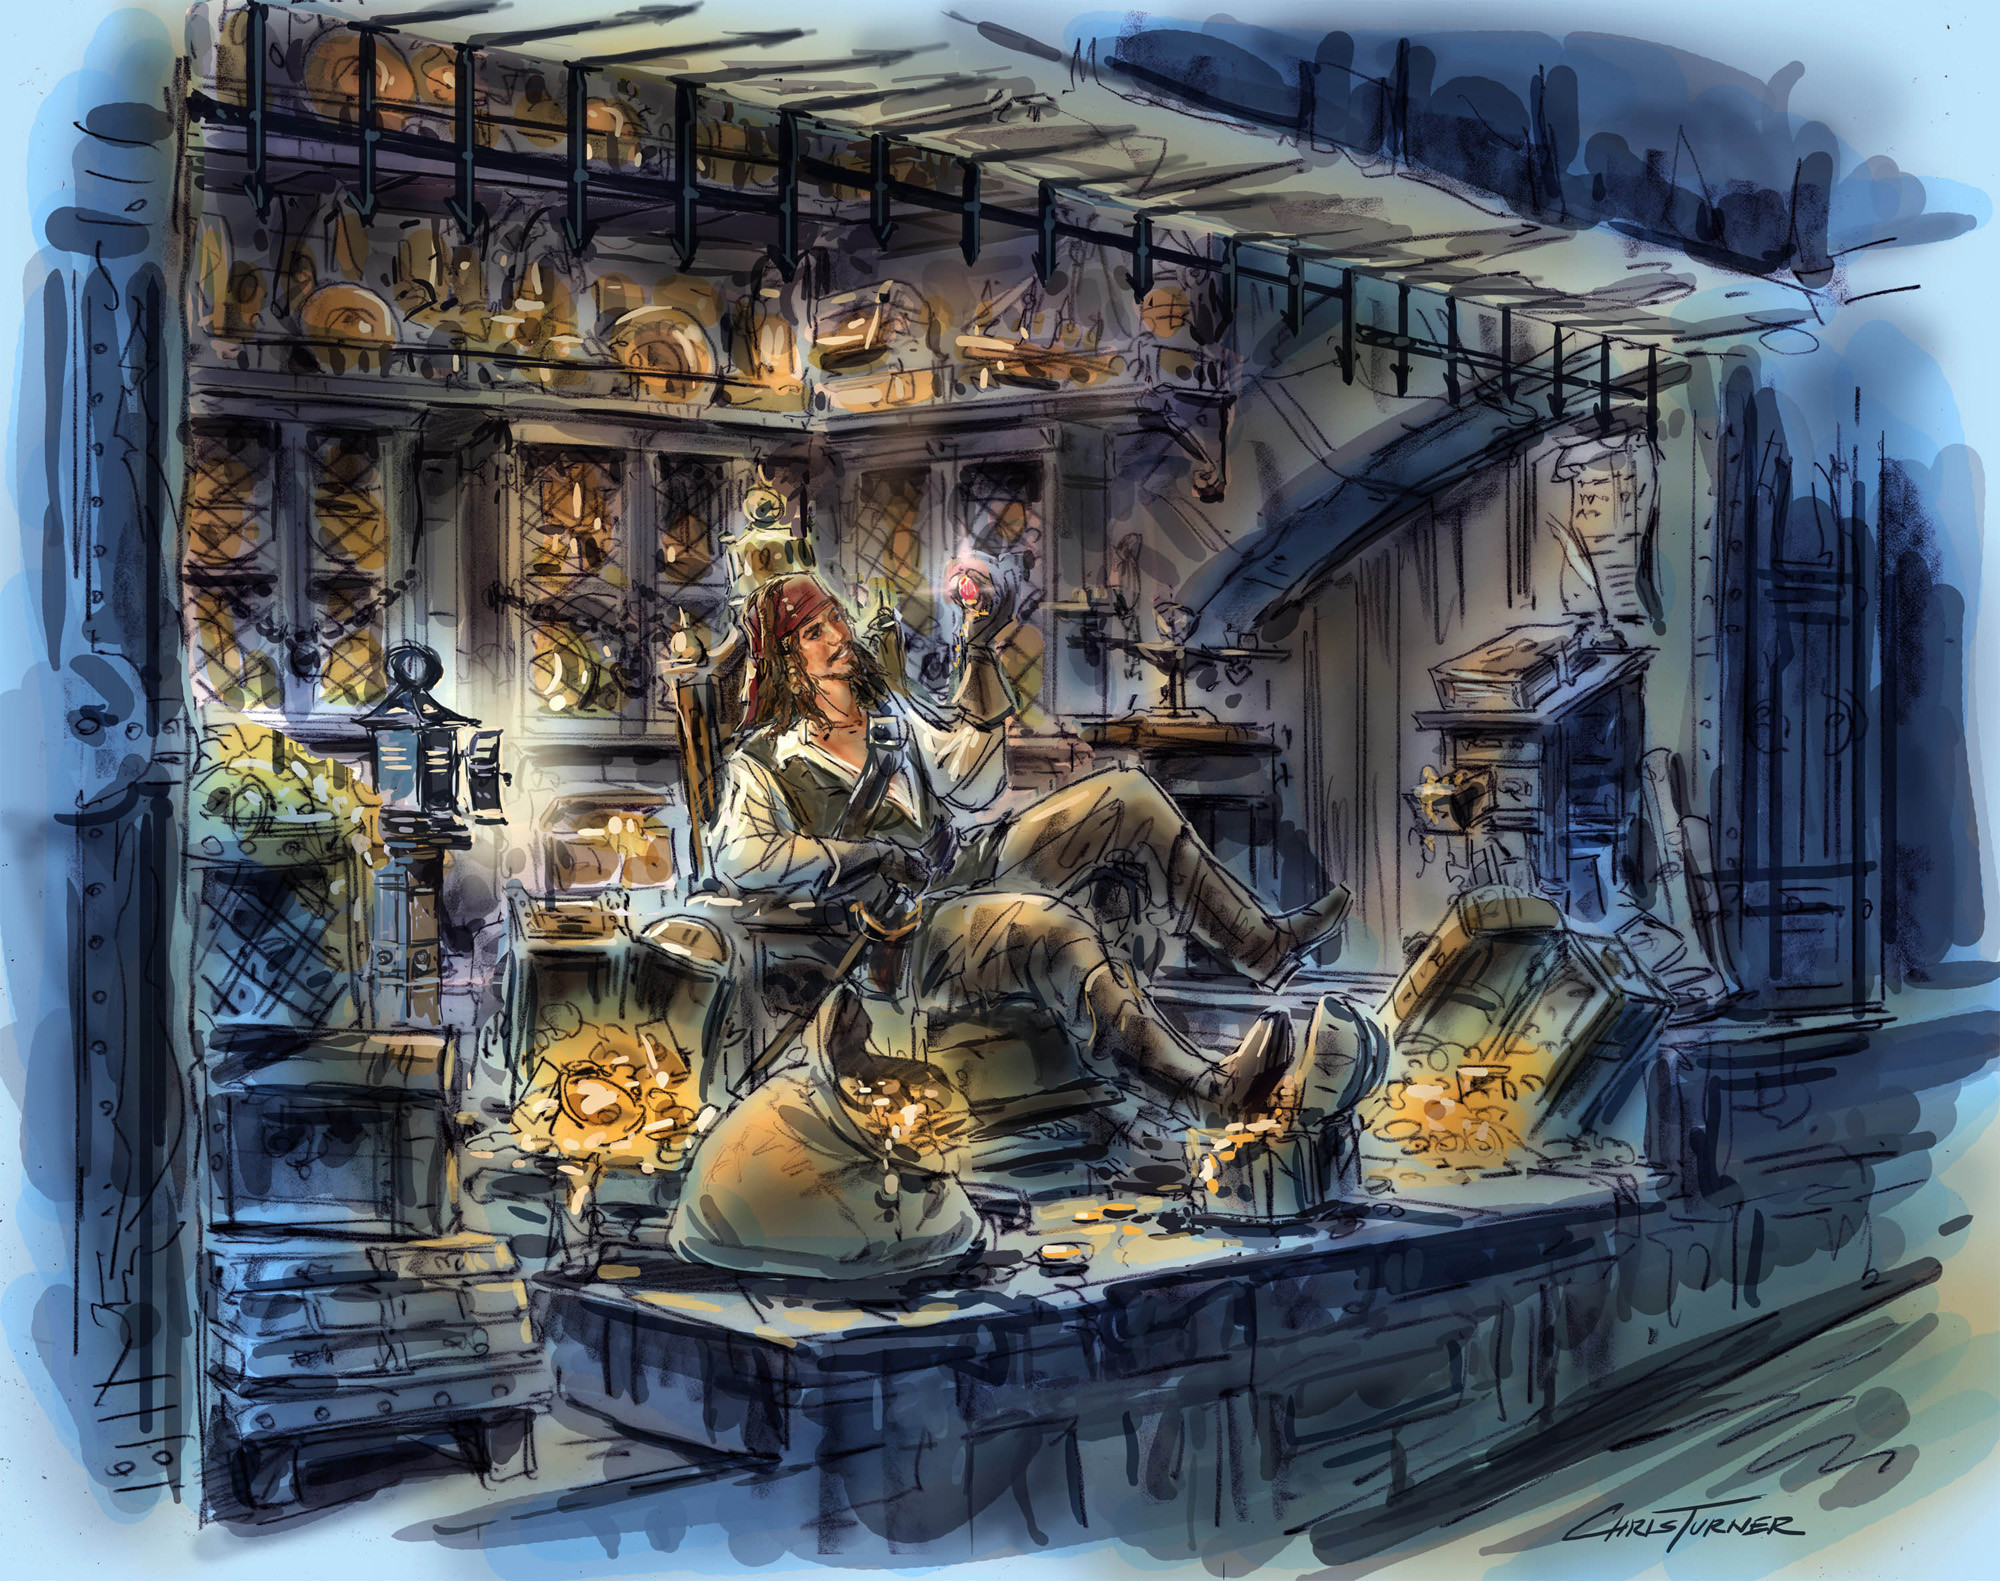 An artist's rendering of Jack Sparrow in the Pirates attraction.